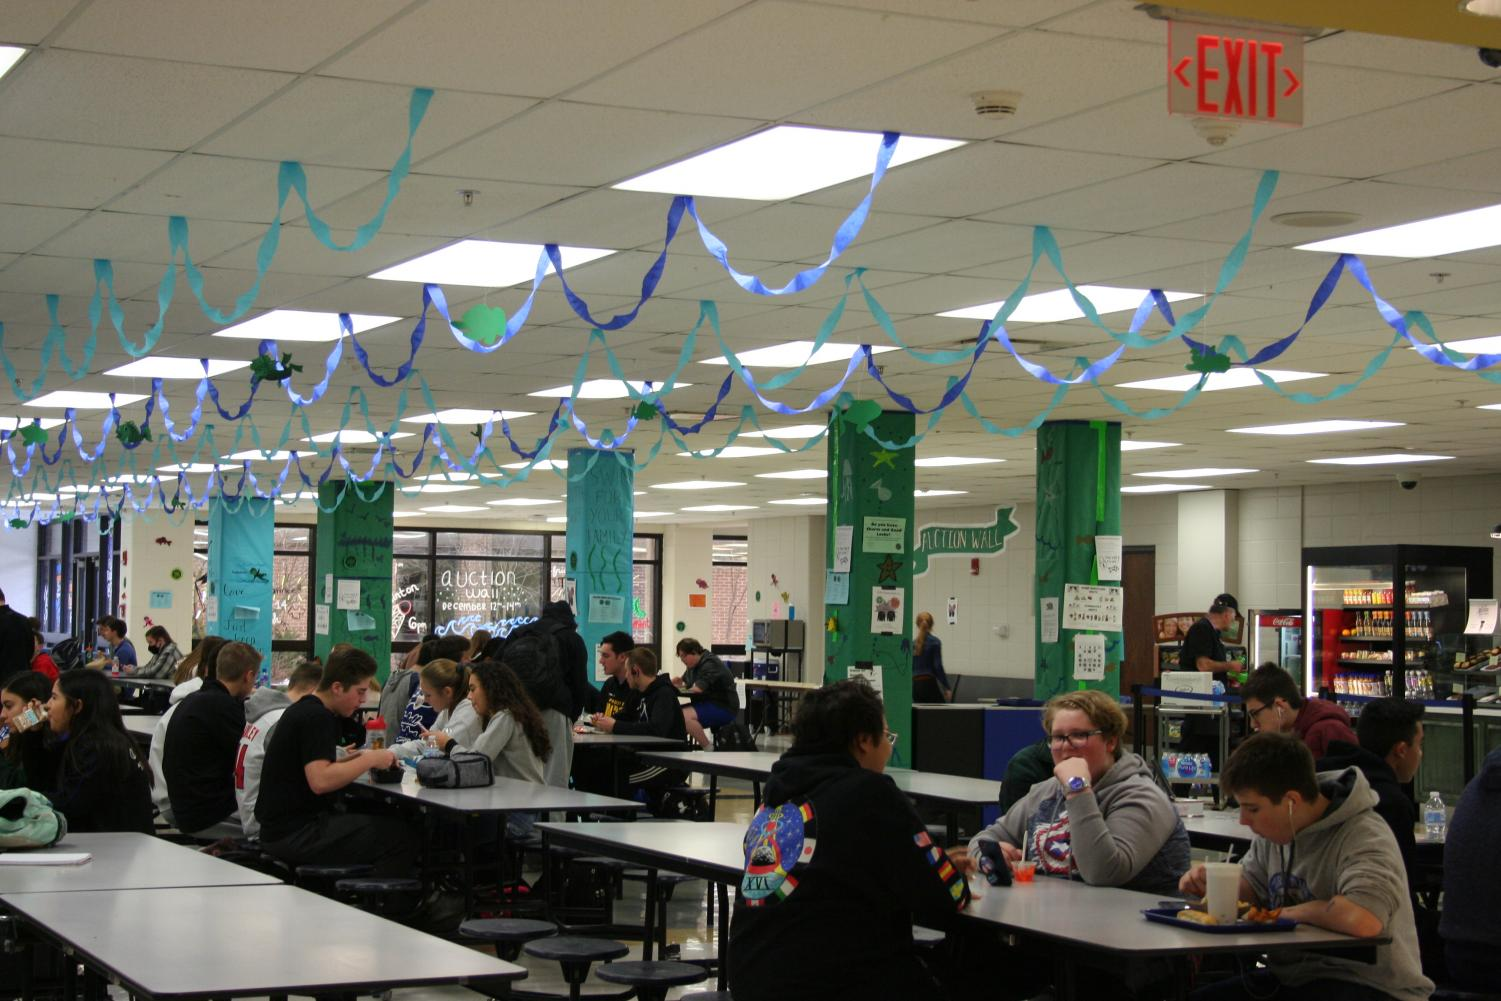 The cafeteria at school contains many different food options for students to choose from, some of which are healthy and some of which are not. However, according to Elizabeth Garcia, health teacher, it is up to the consumer to decide how healthy they would like to eat.